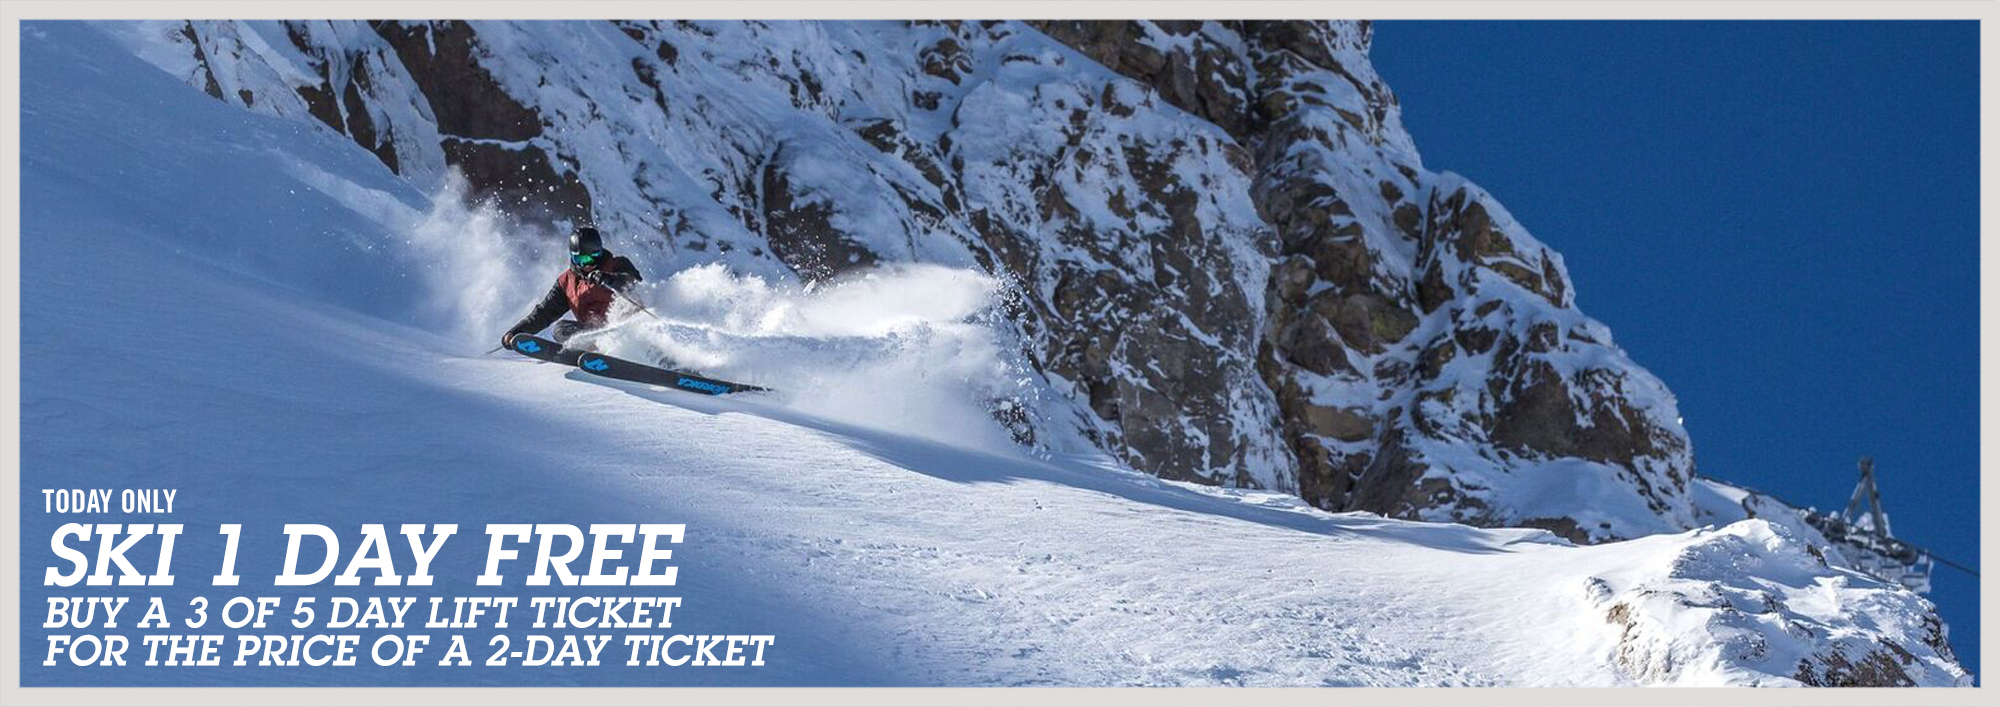 Today Only! Buy a 3 of 5 Day Lift Ticket for the Price of a 2-Day Ticket